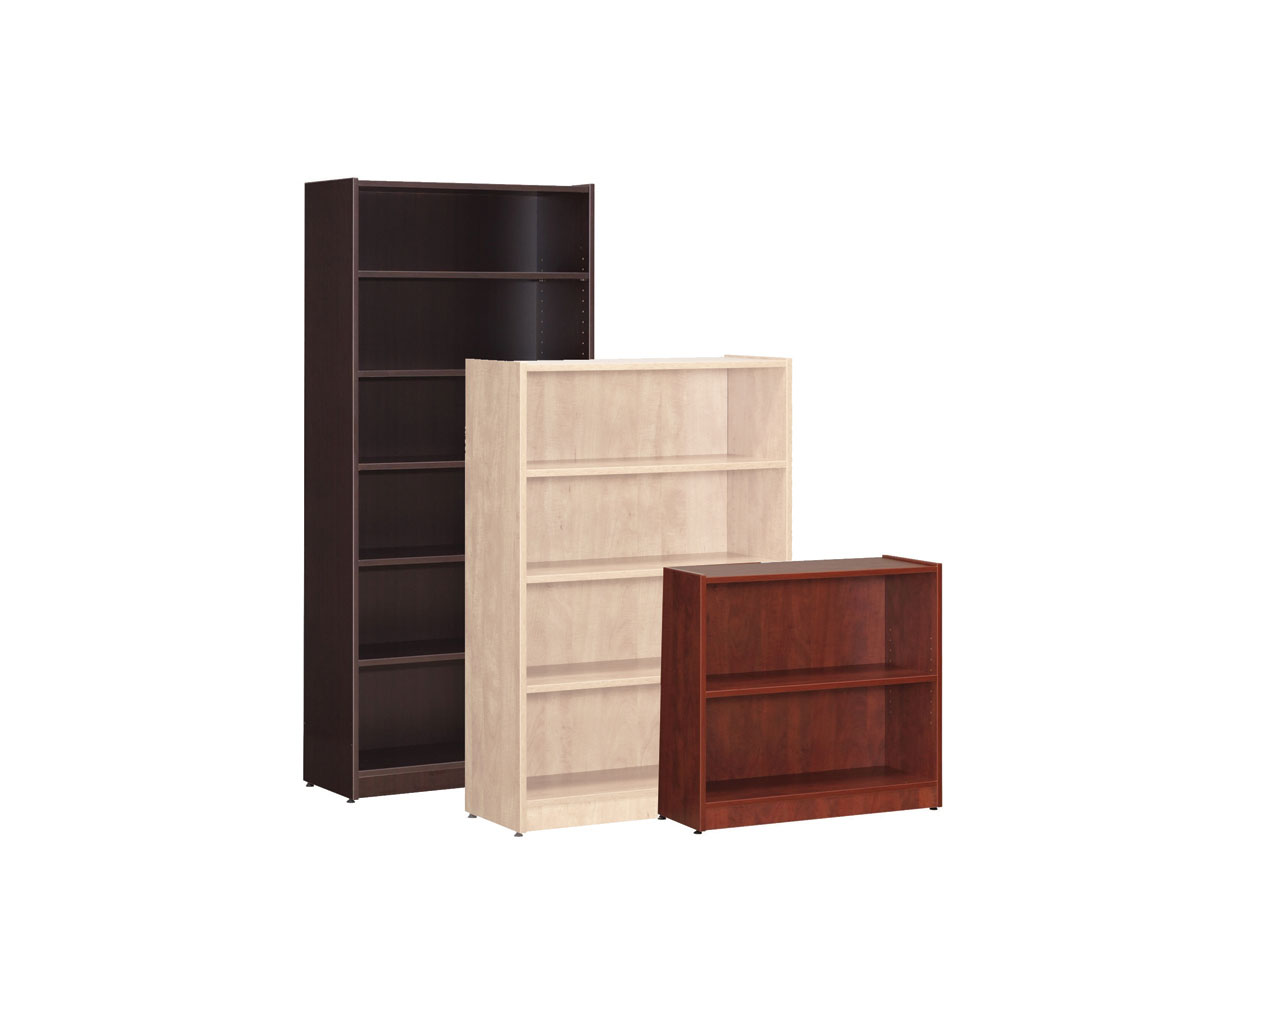 Bookshelves Cabinets and Storage Solutions For Your Office